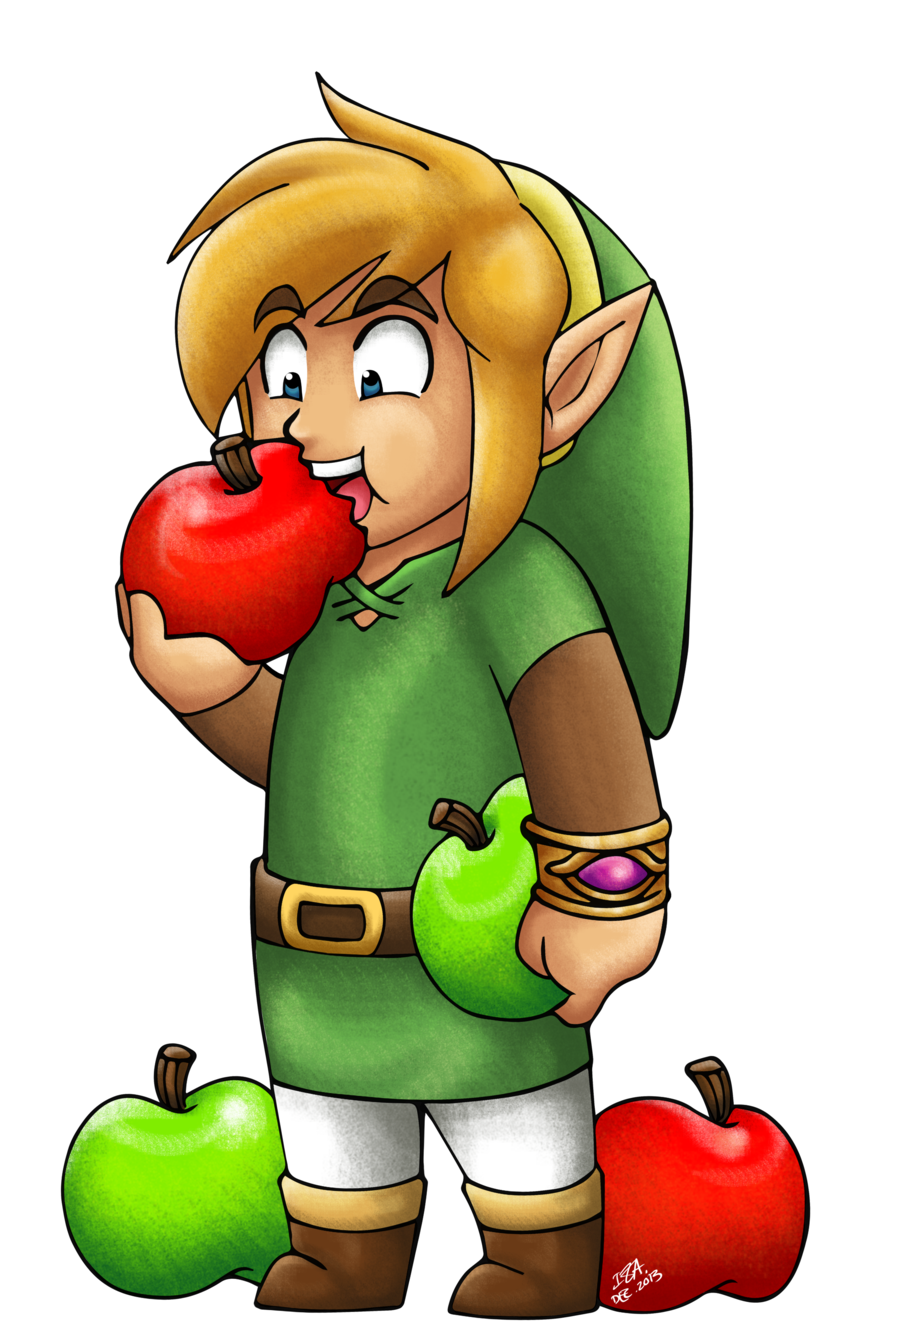 Link Eating Apples by IzIzIza.deviantart.com on @deviantART